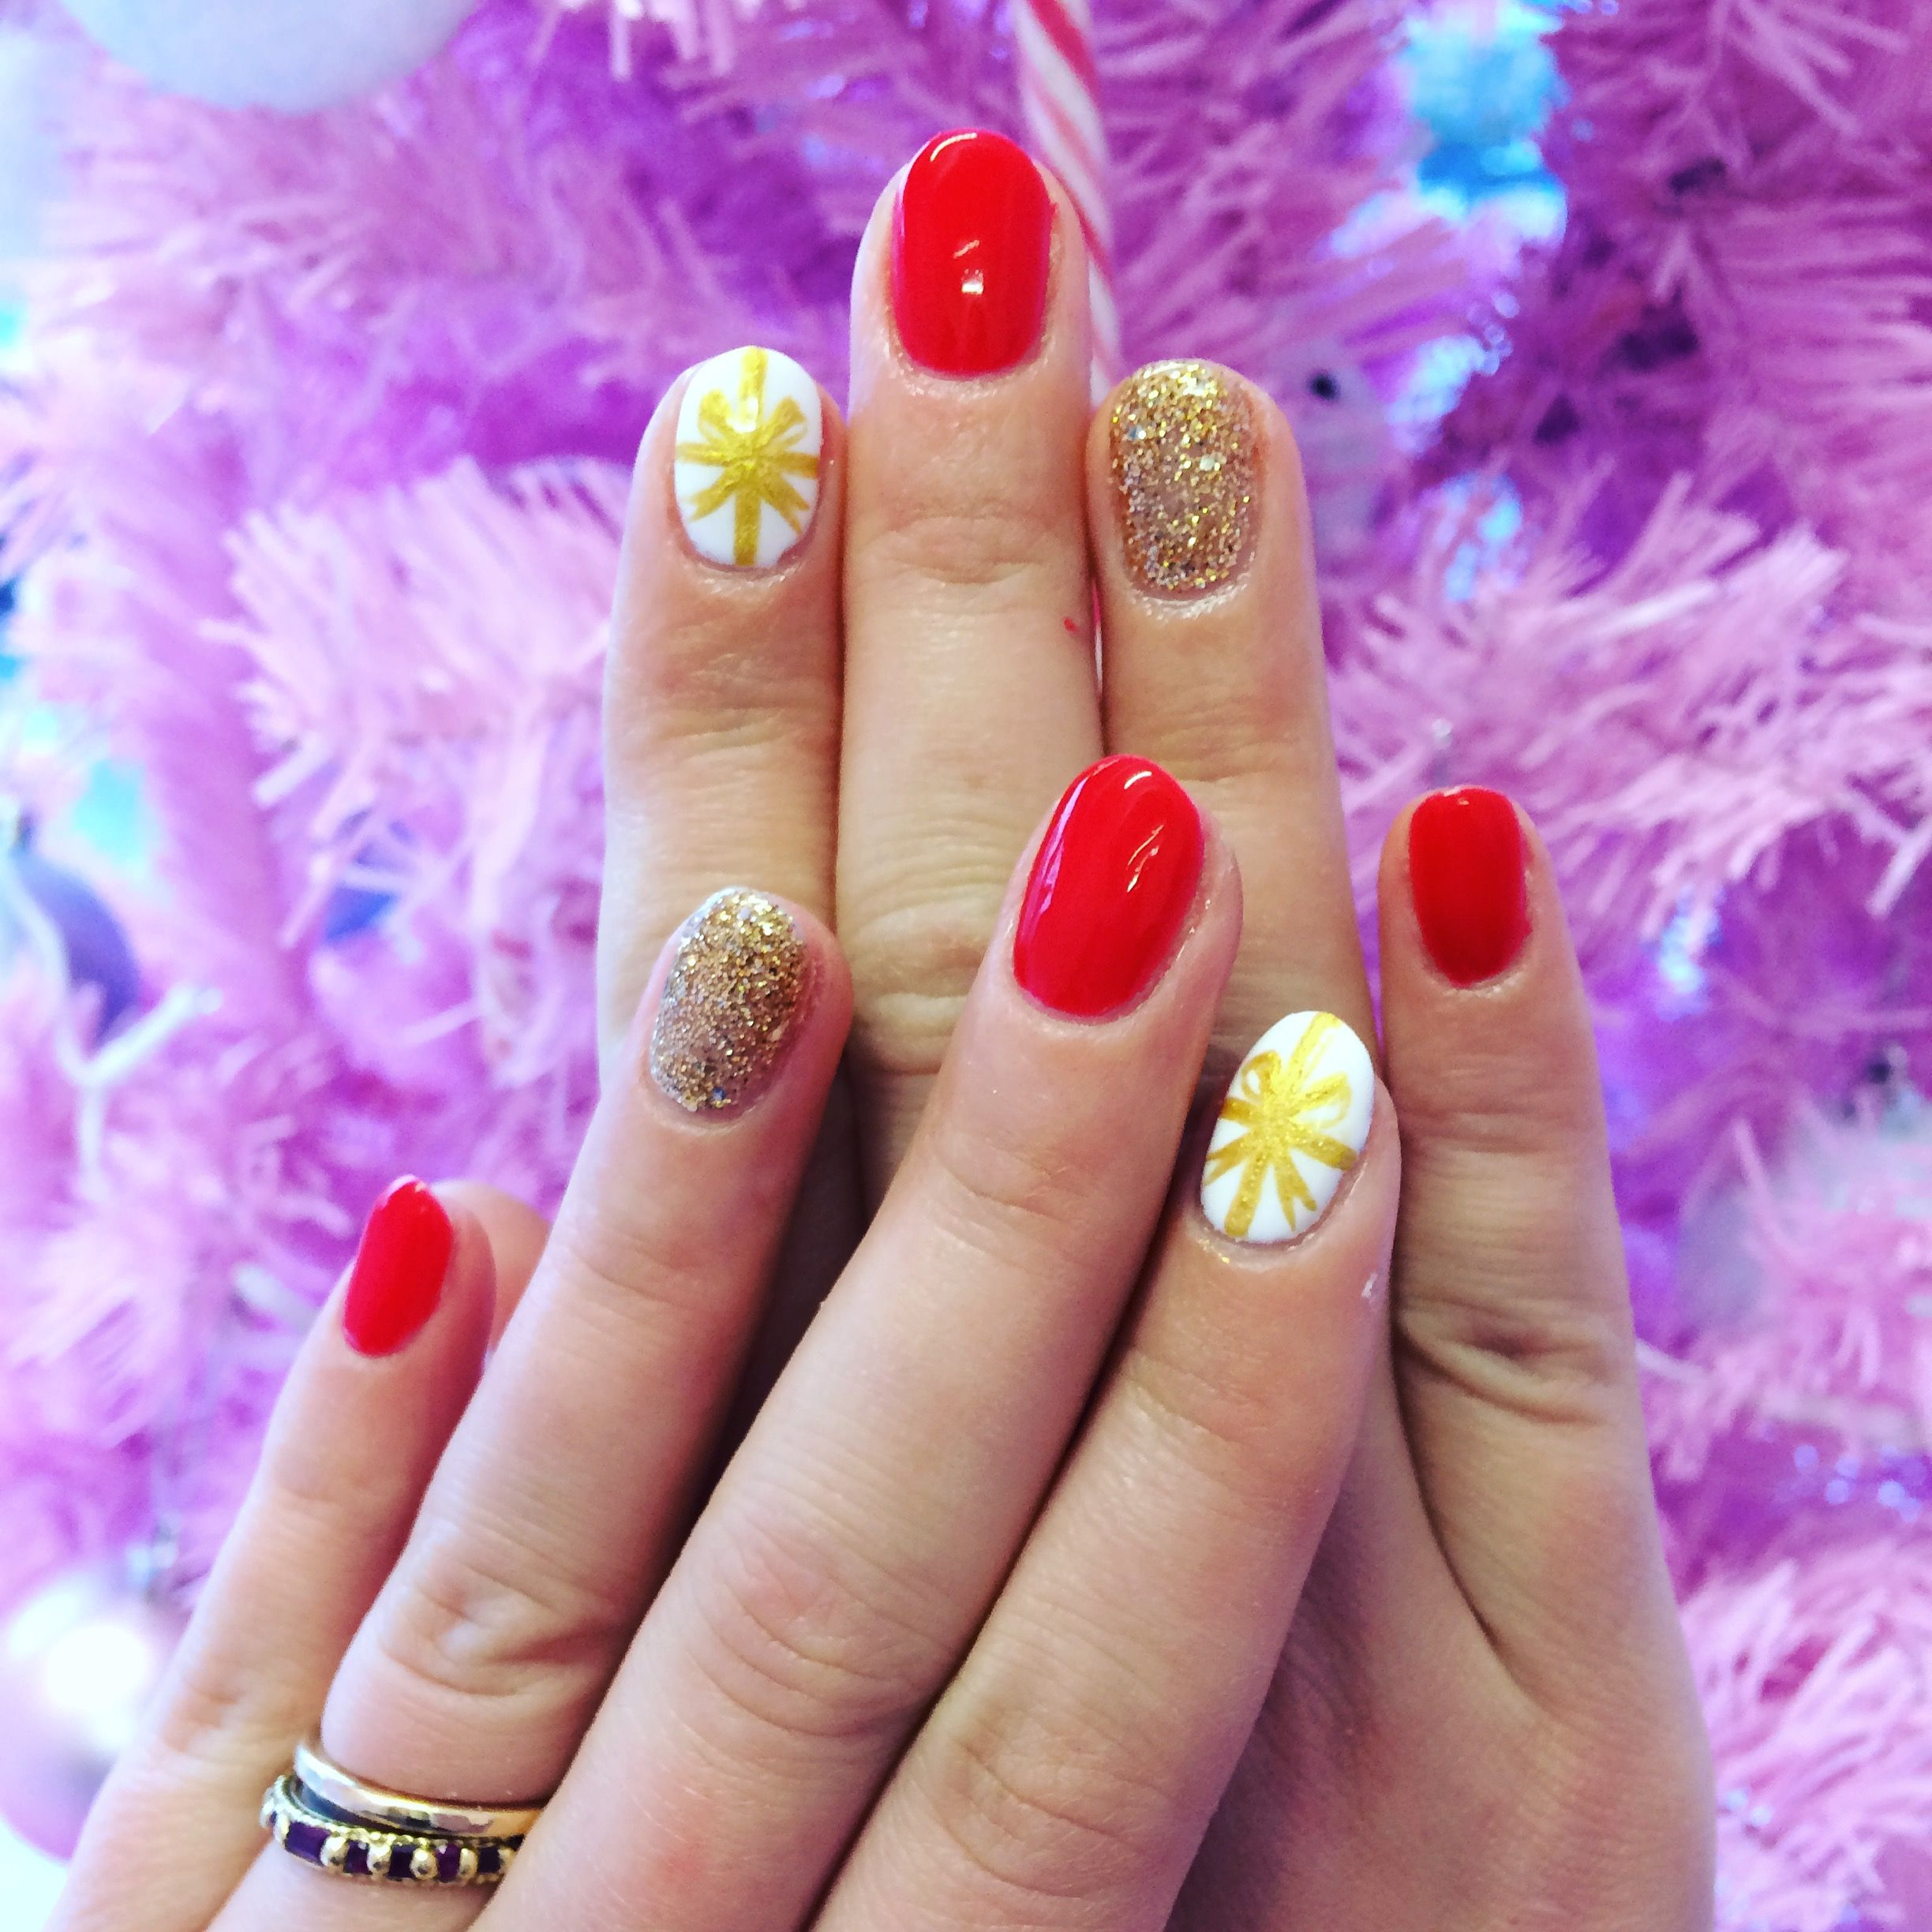 Glitter and red with gift wrapped Christmas nail art | Our Nails ...